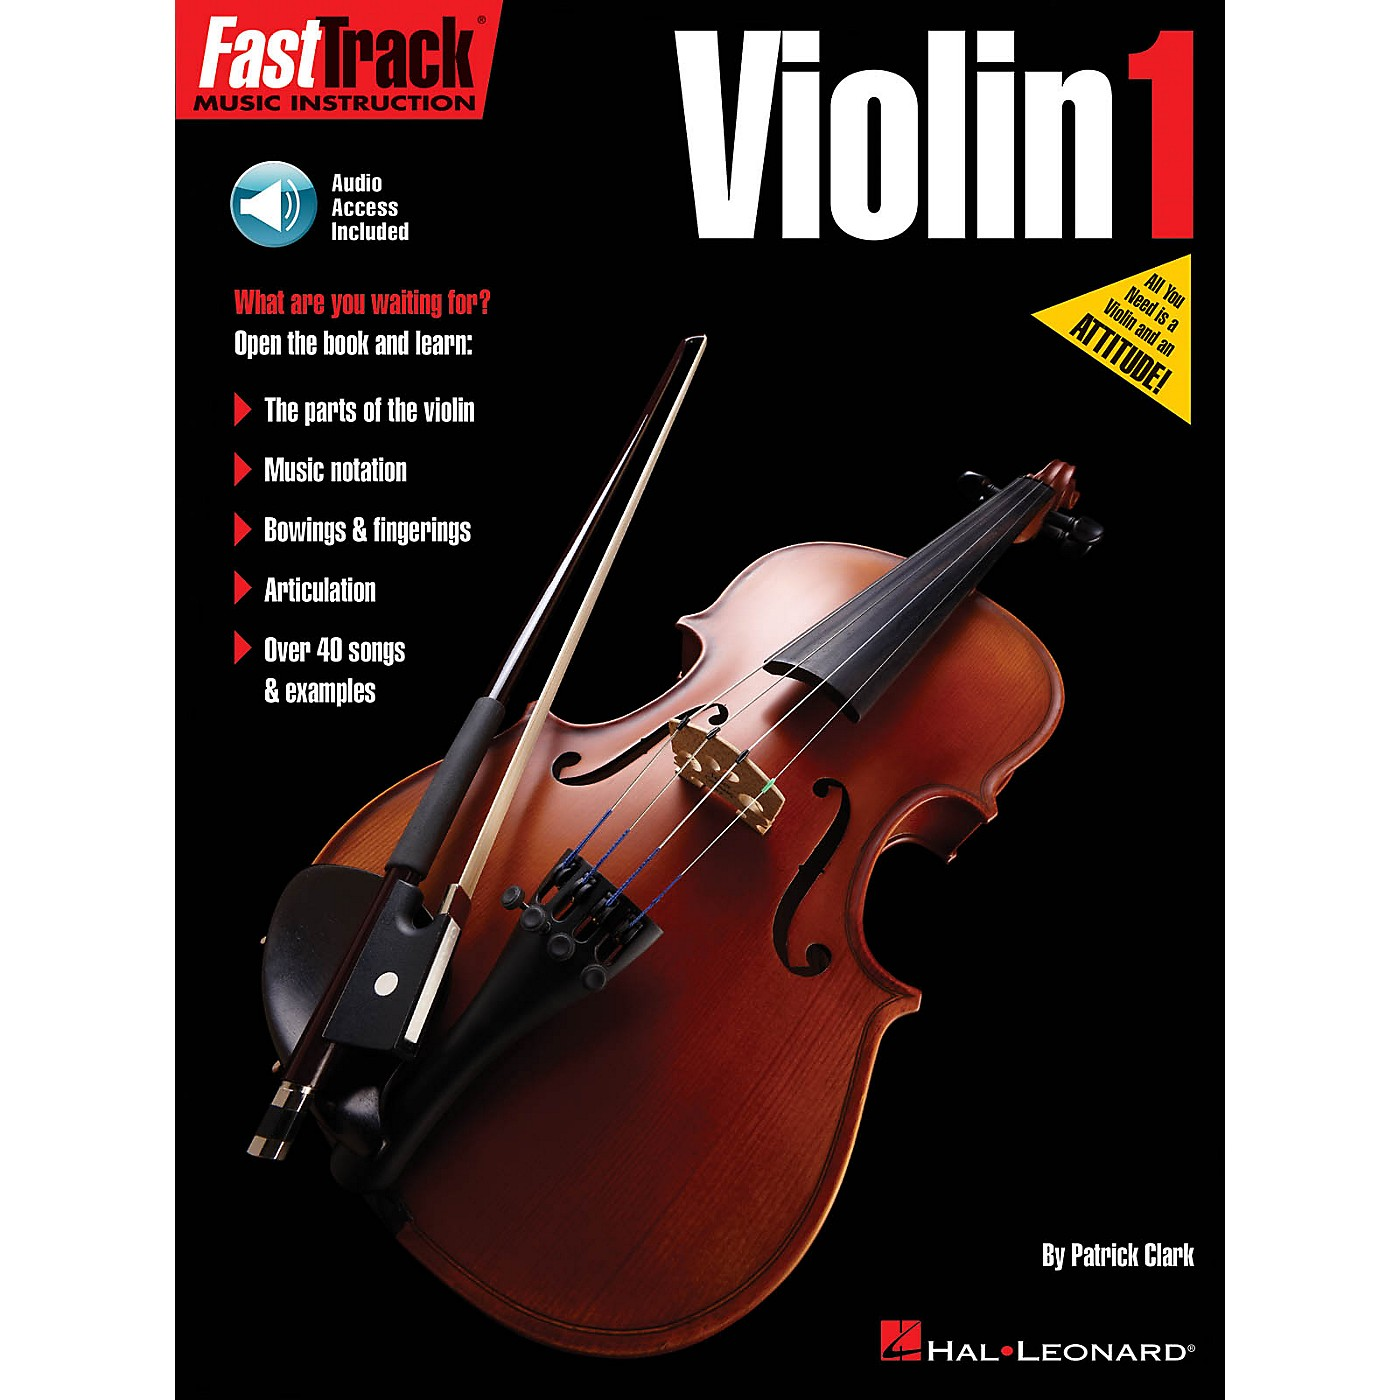 Hal Leonard FastTrack Violin Method Book 1 Fast Track Music Instruction Softcover Audio Online by Patrick Clark thumbnail